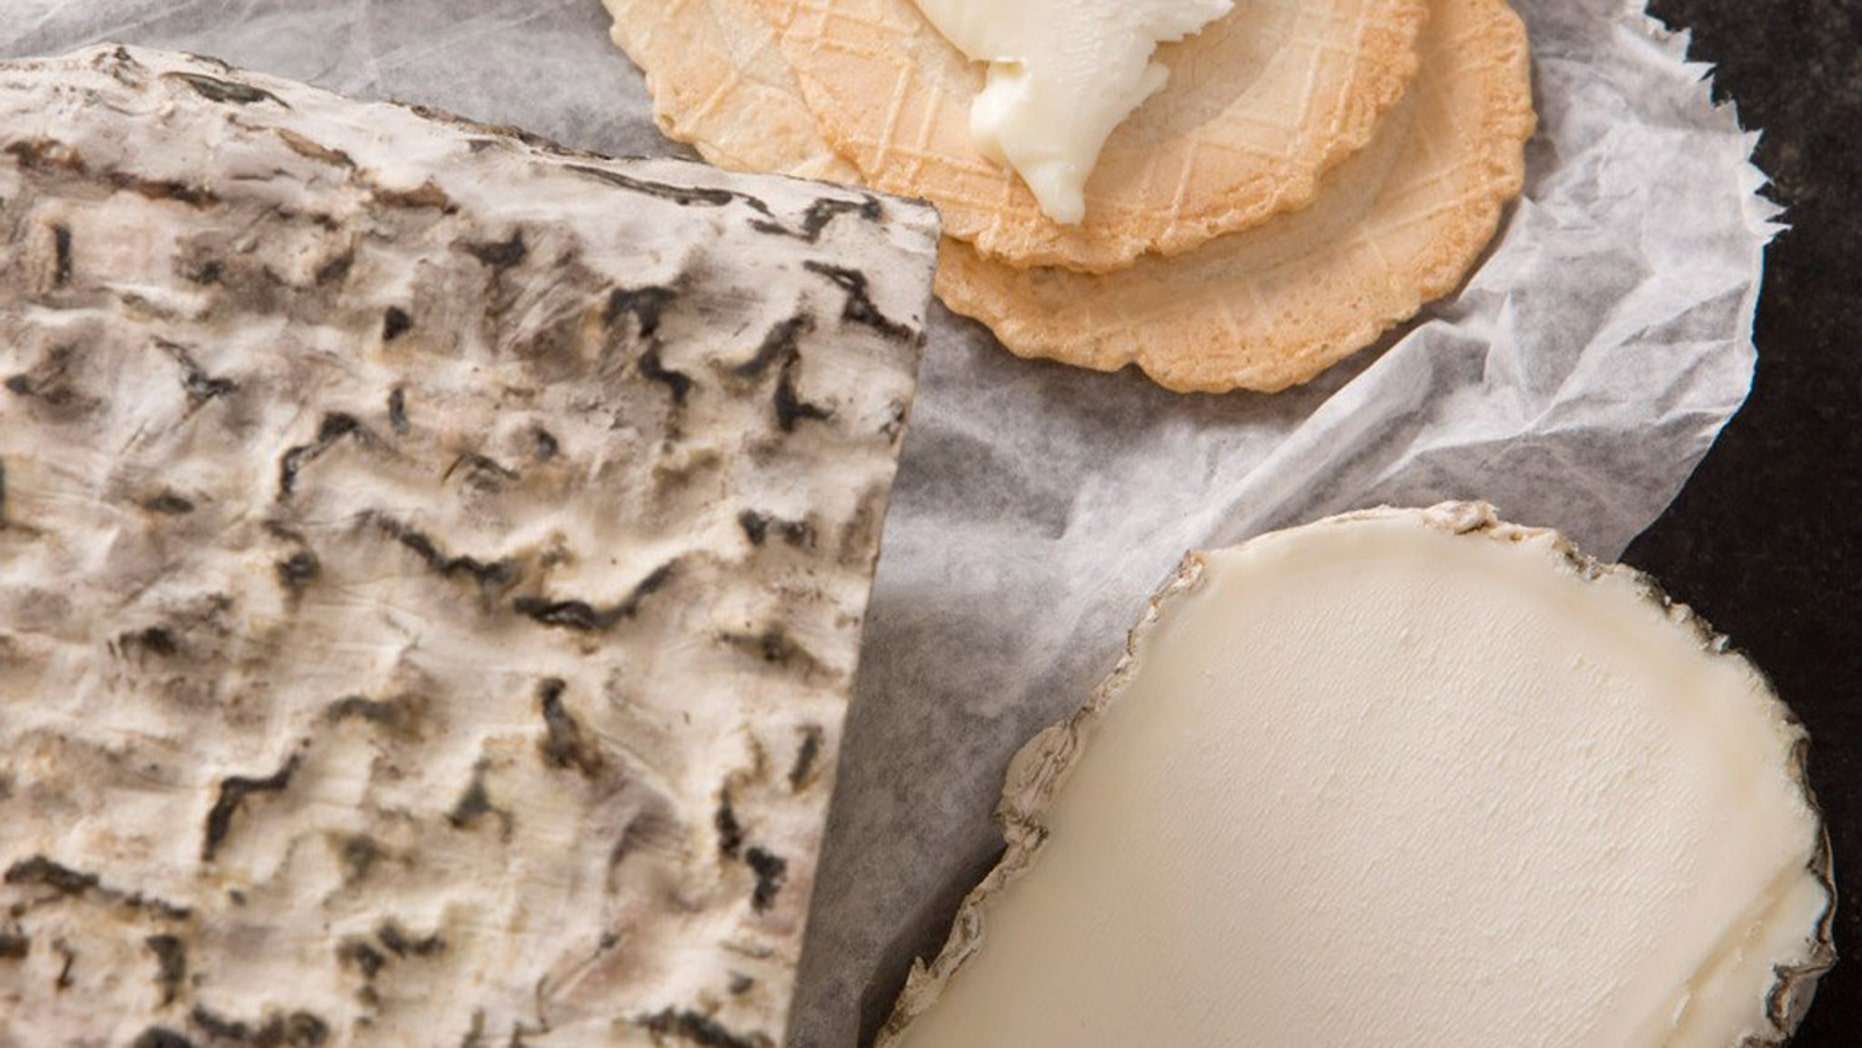 We searched far and wide to find the world's tastiest cheese.